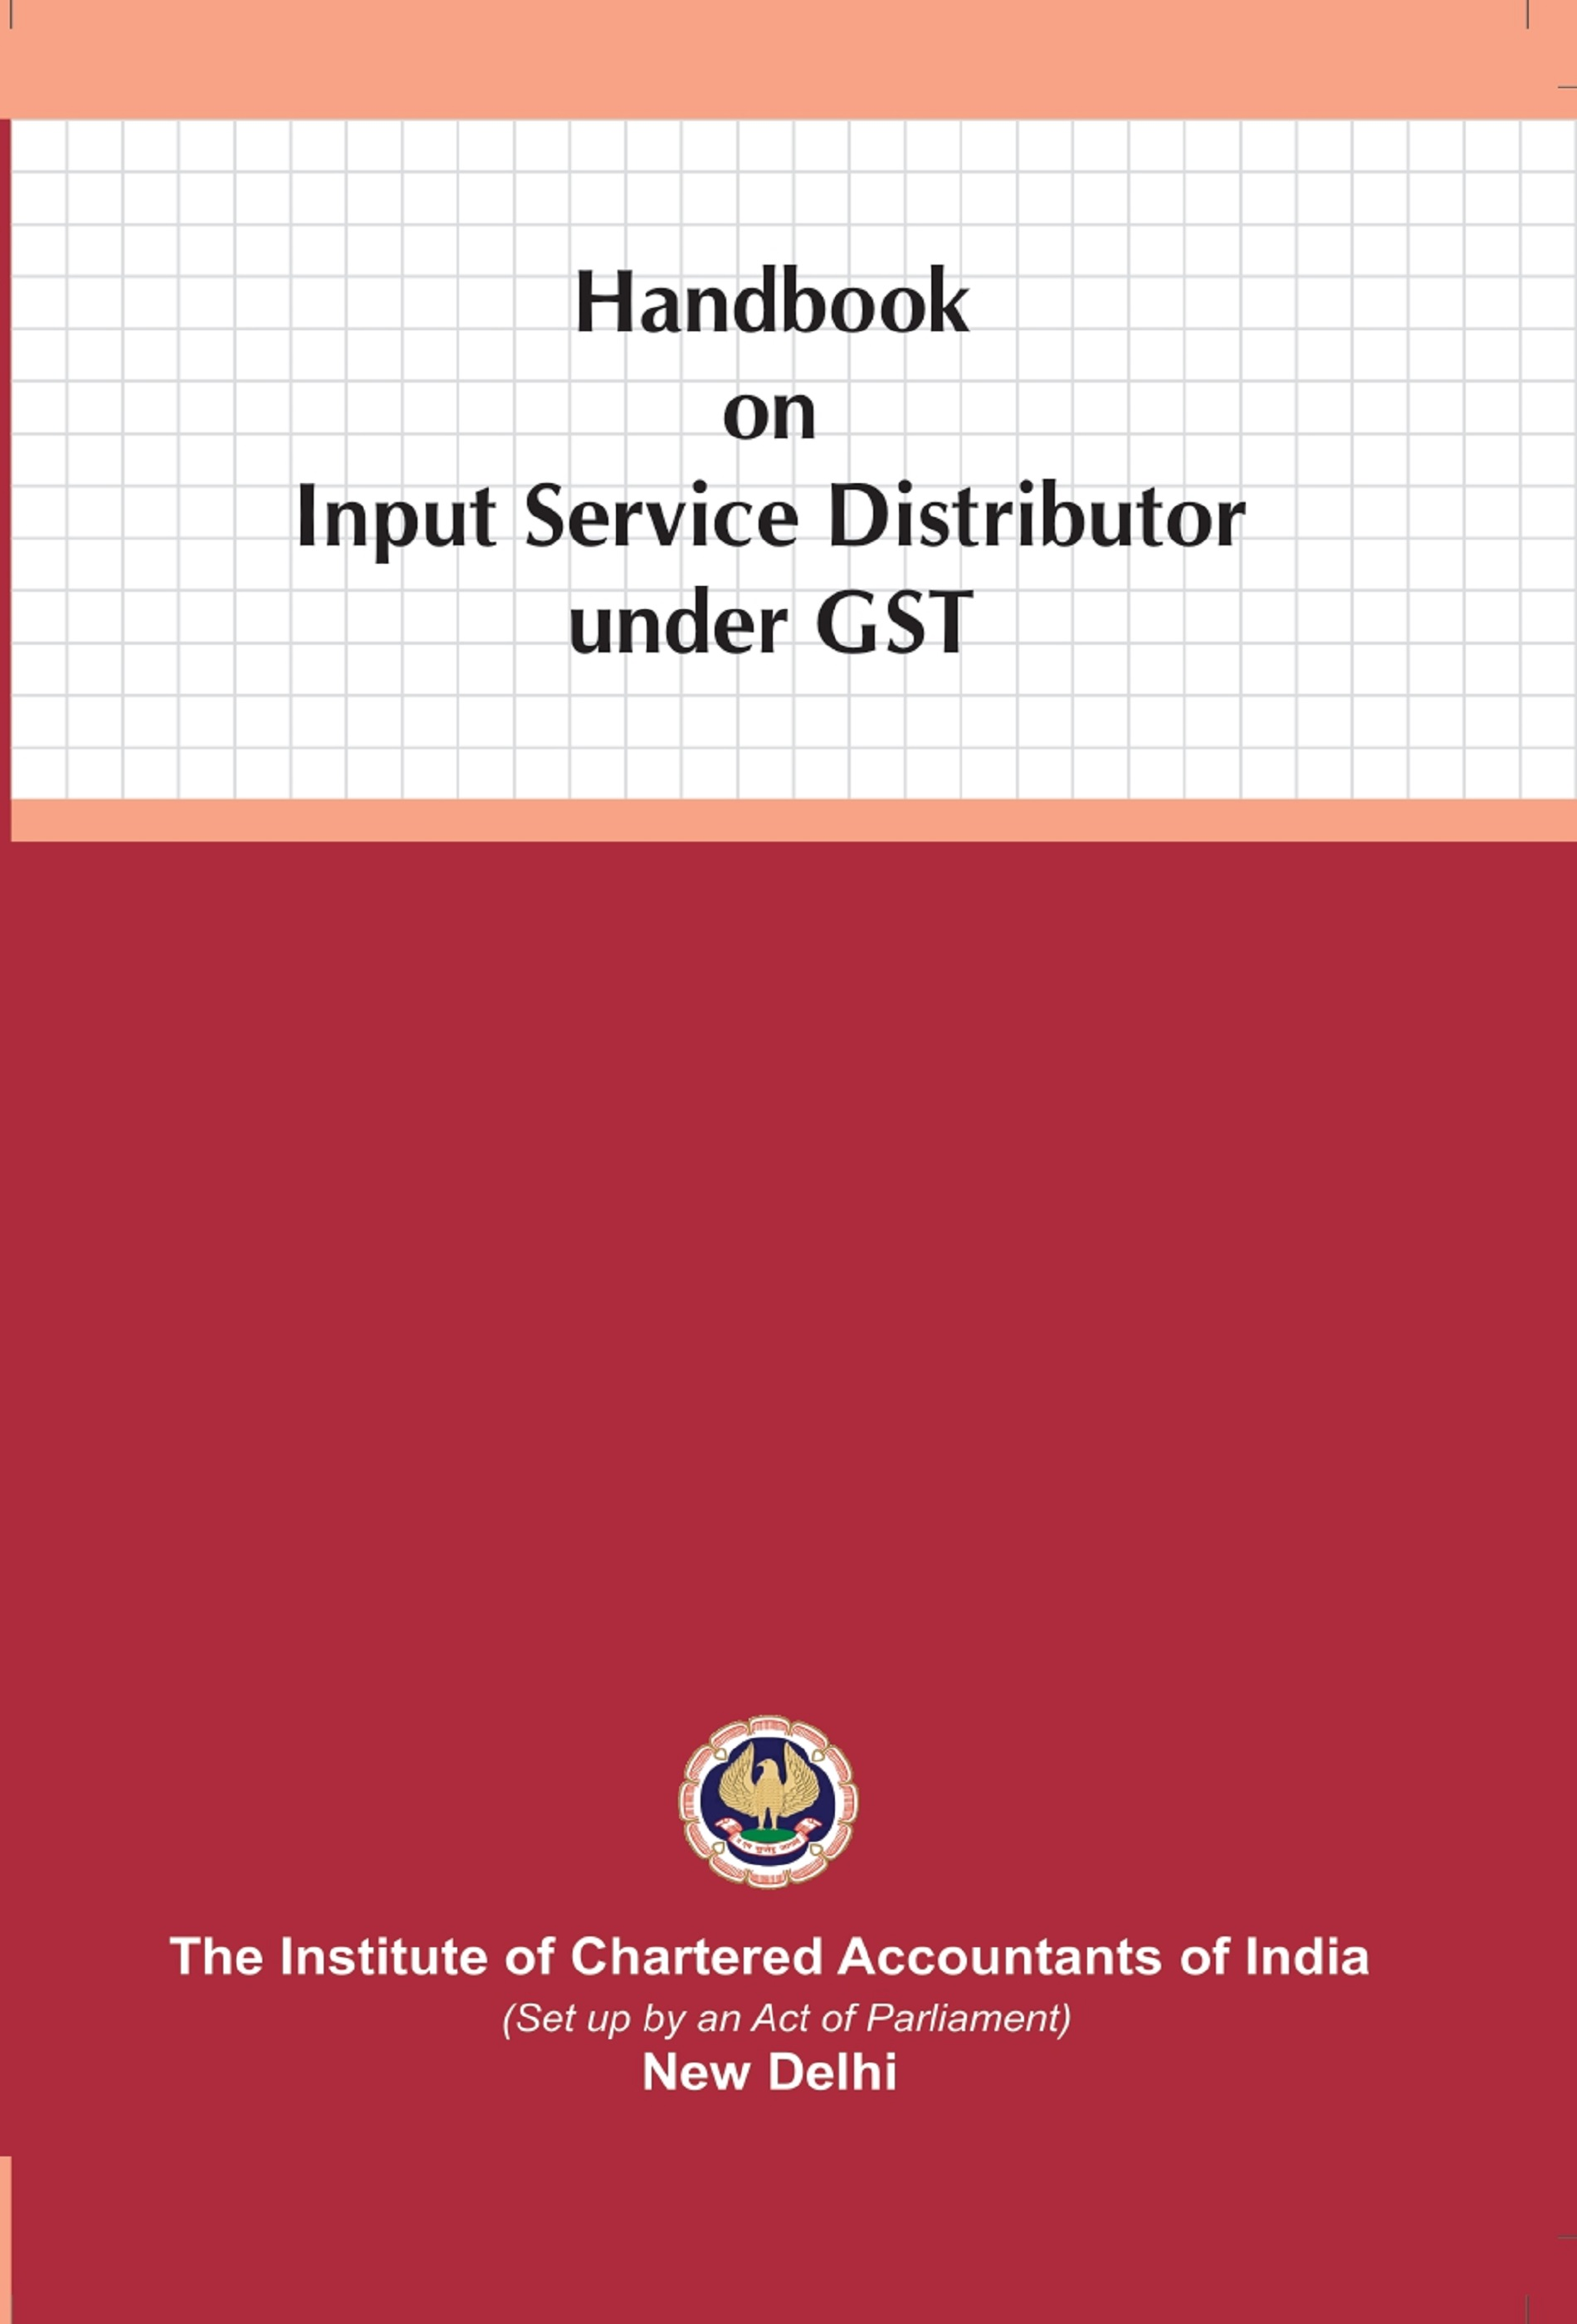 Handbook on Input Service Distributor under GST (August, 2020 Edition)